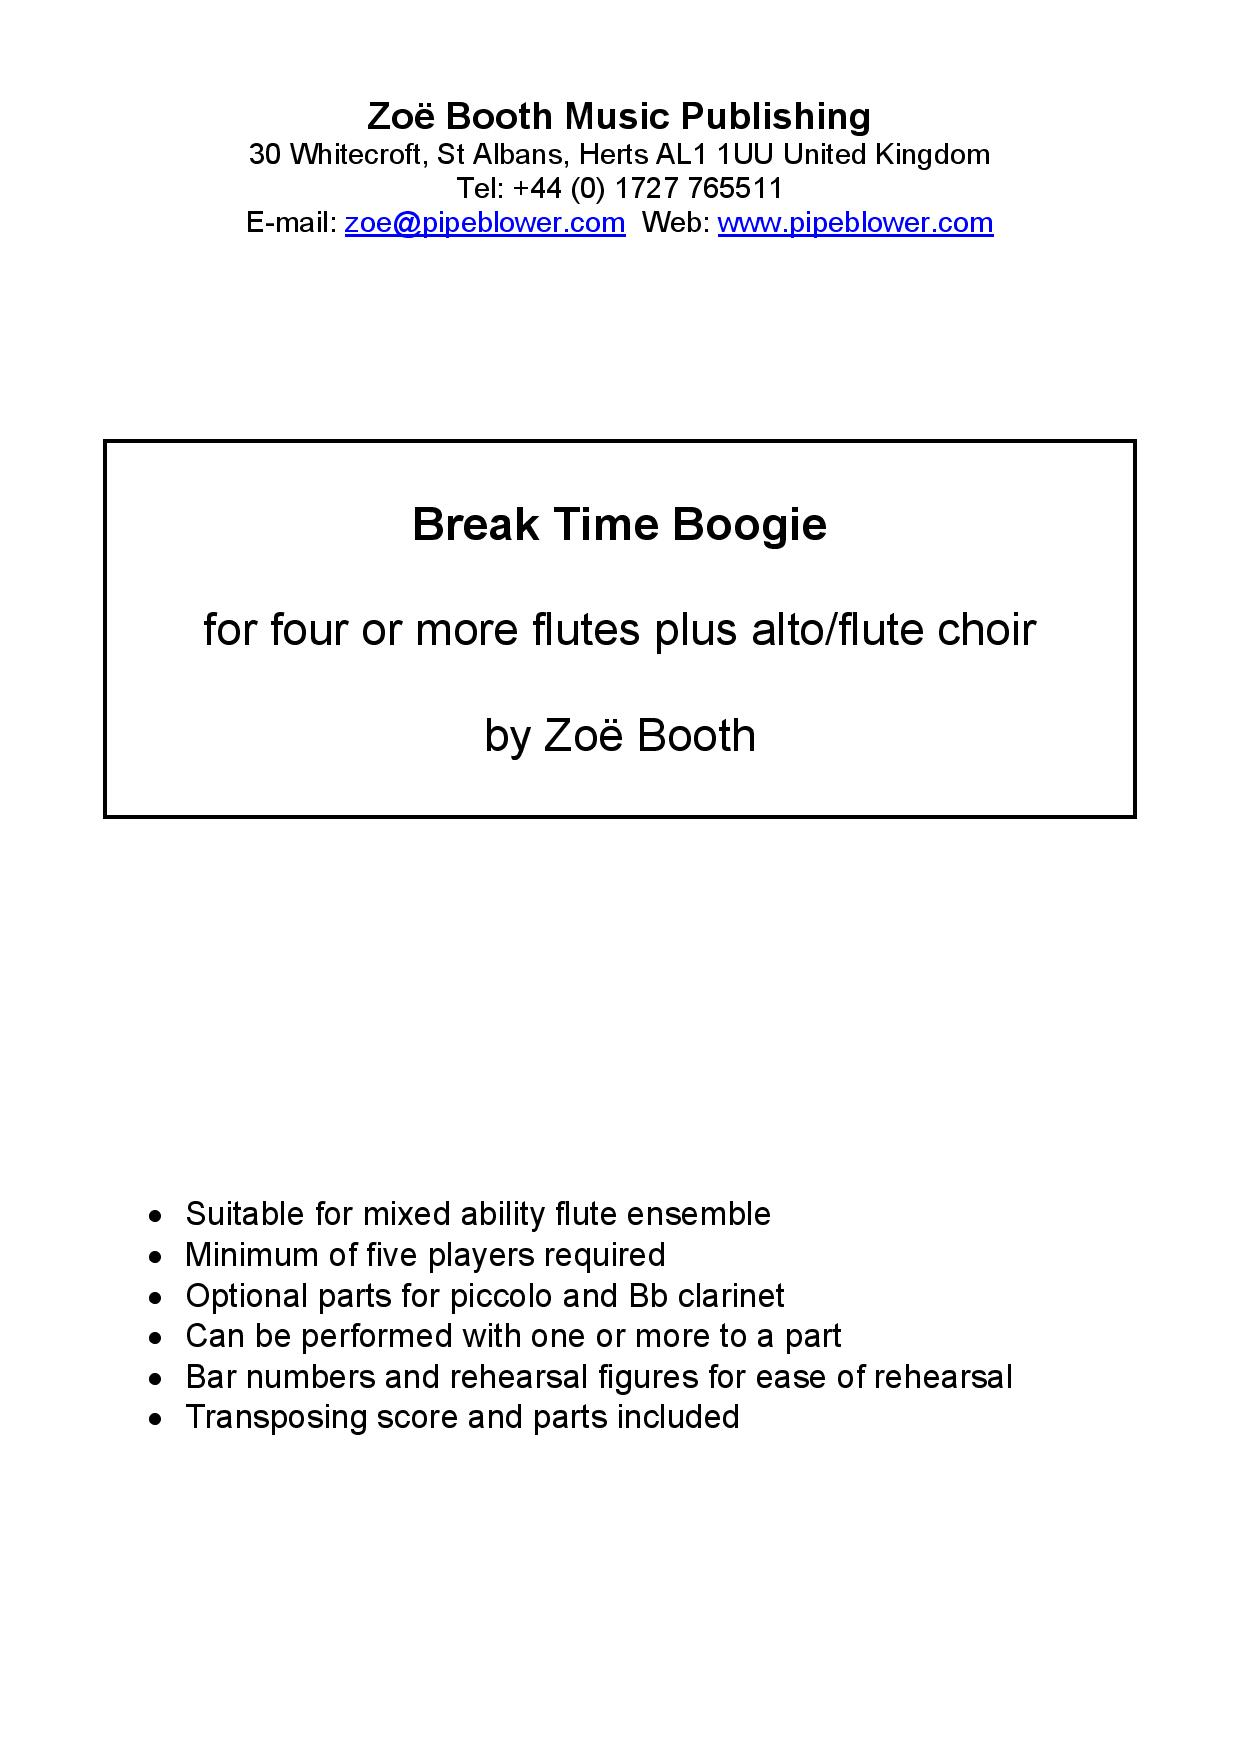 Breaktime Boogie  by Zoë Booth for five or more flutes/flute choir